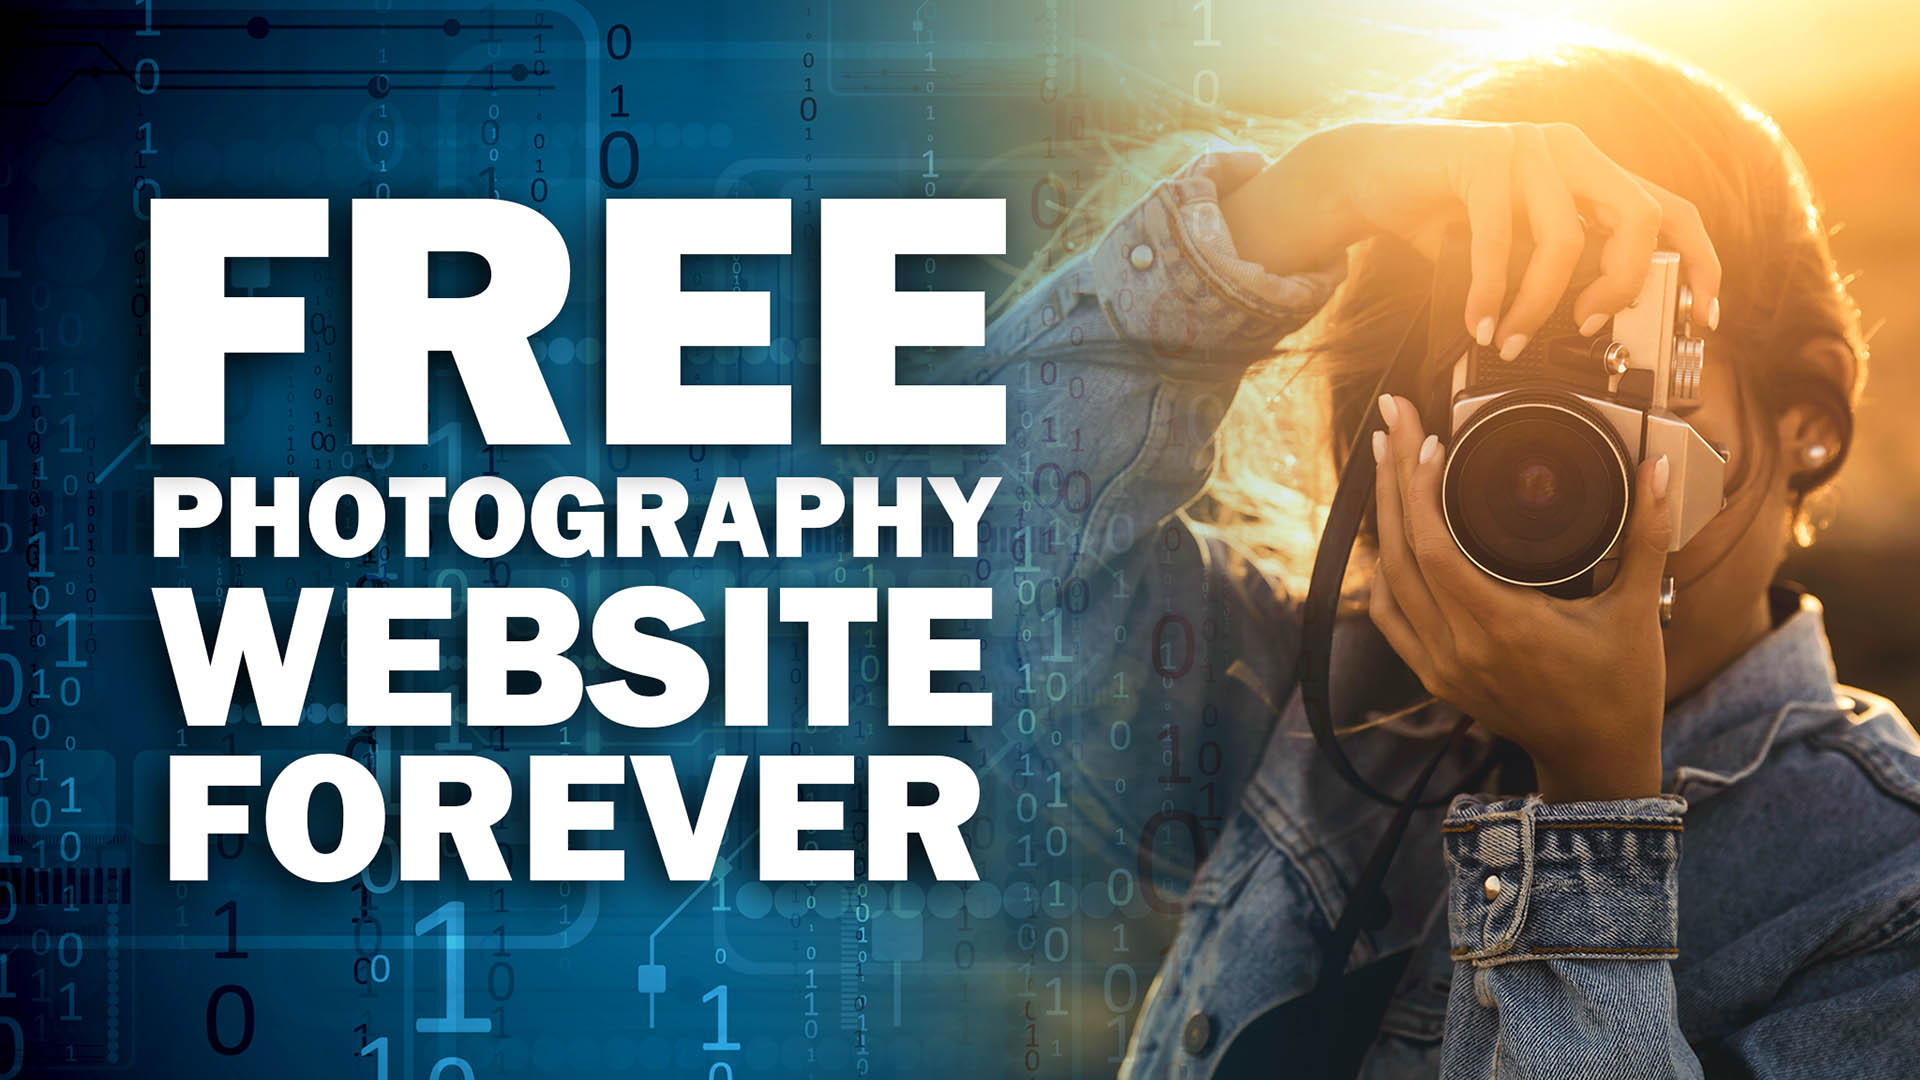 Webstabbers - Free Photography Website Forever - Course Image